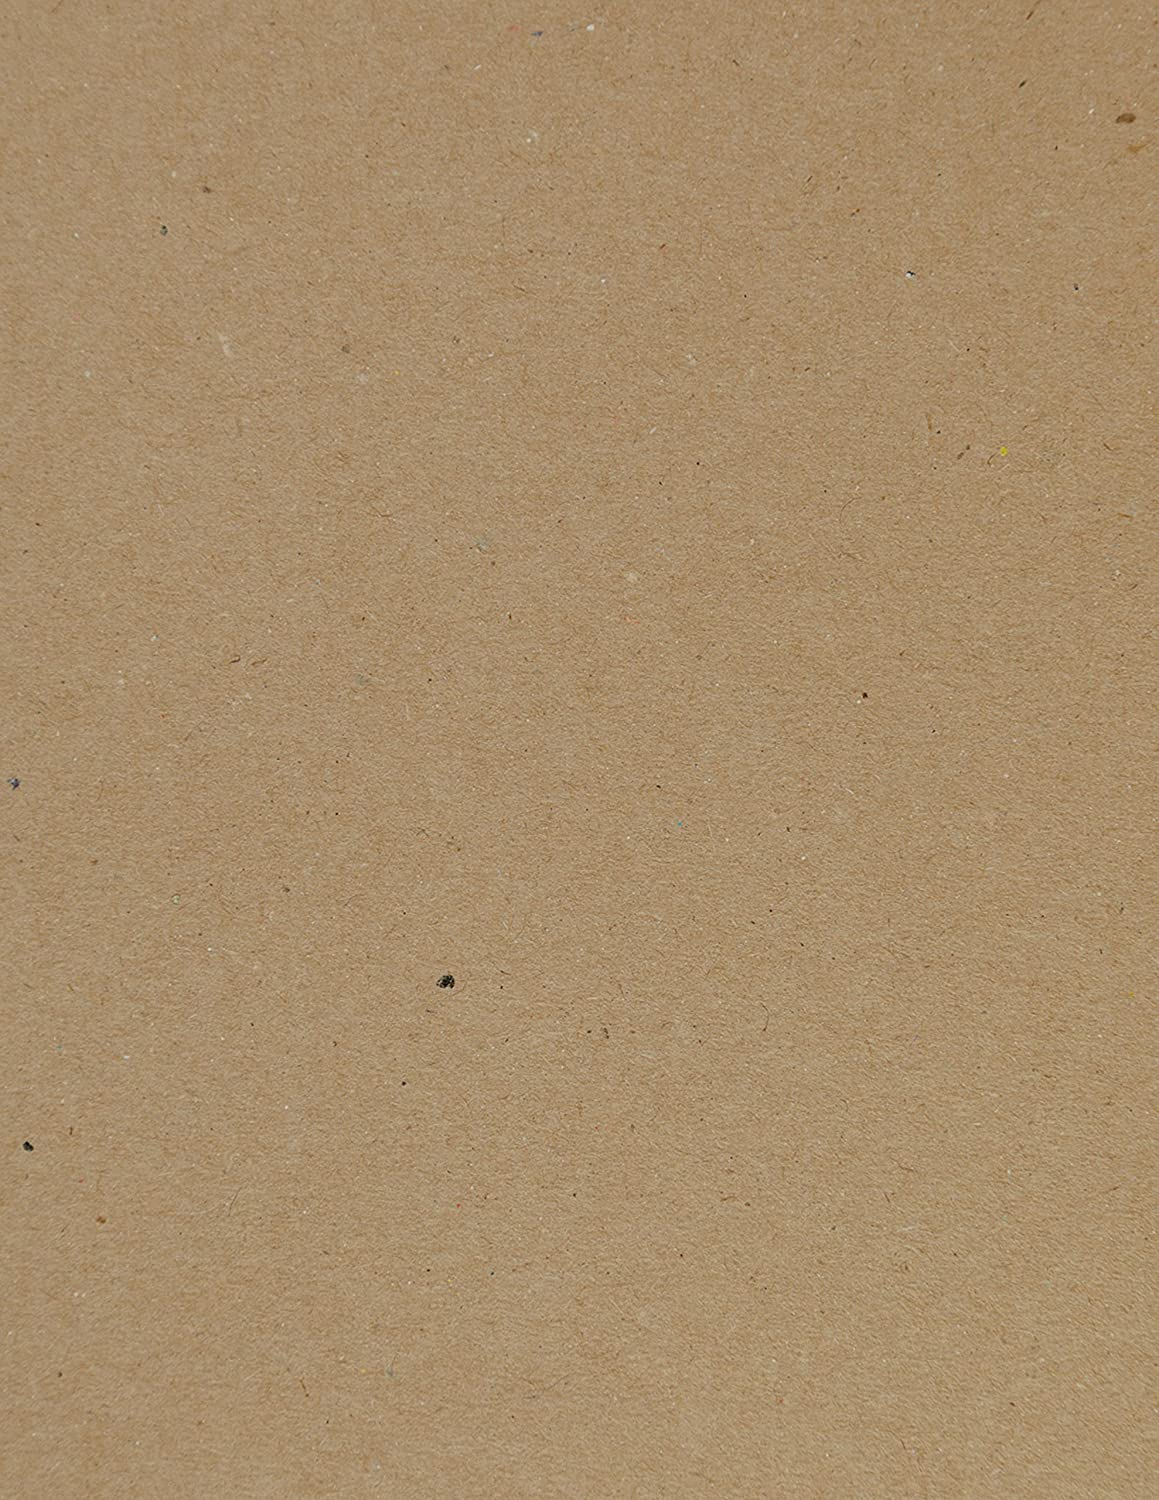 Chipboard Sheets. Kraft Brown. Great for Creative Projects and Protecting Valuable Photos and documents. (9